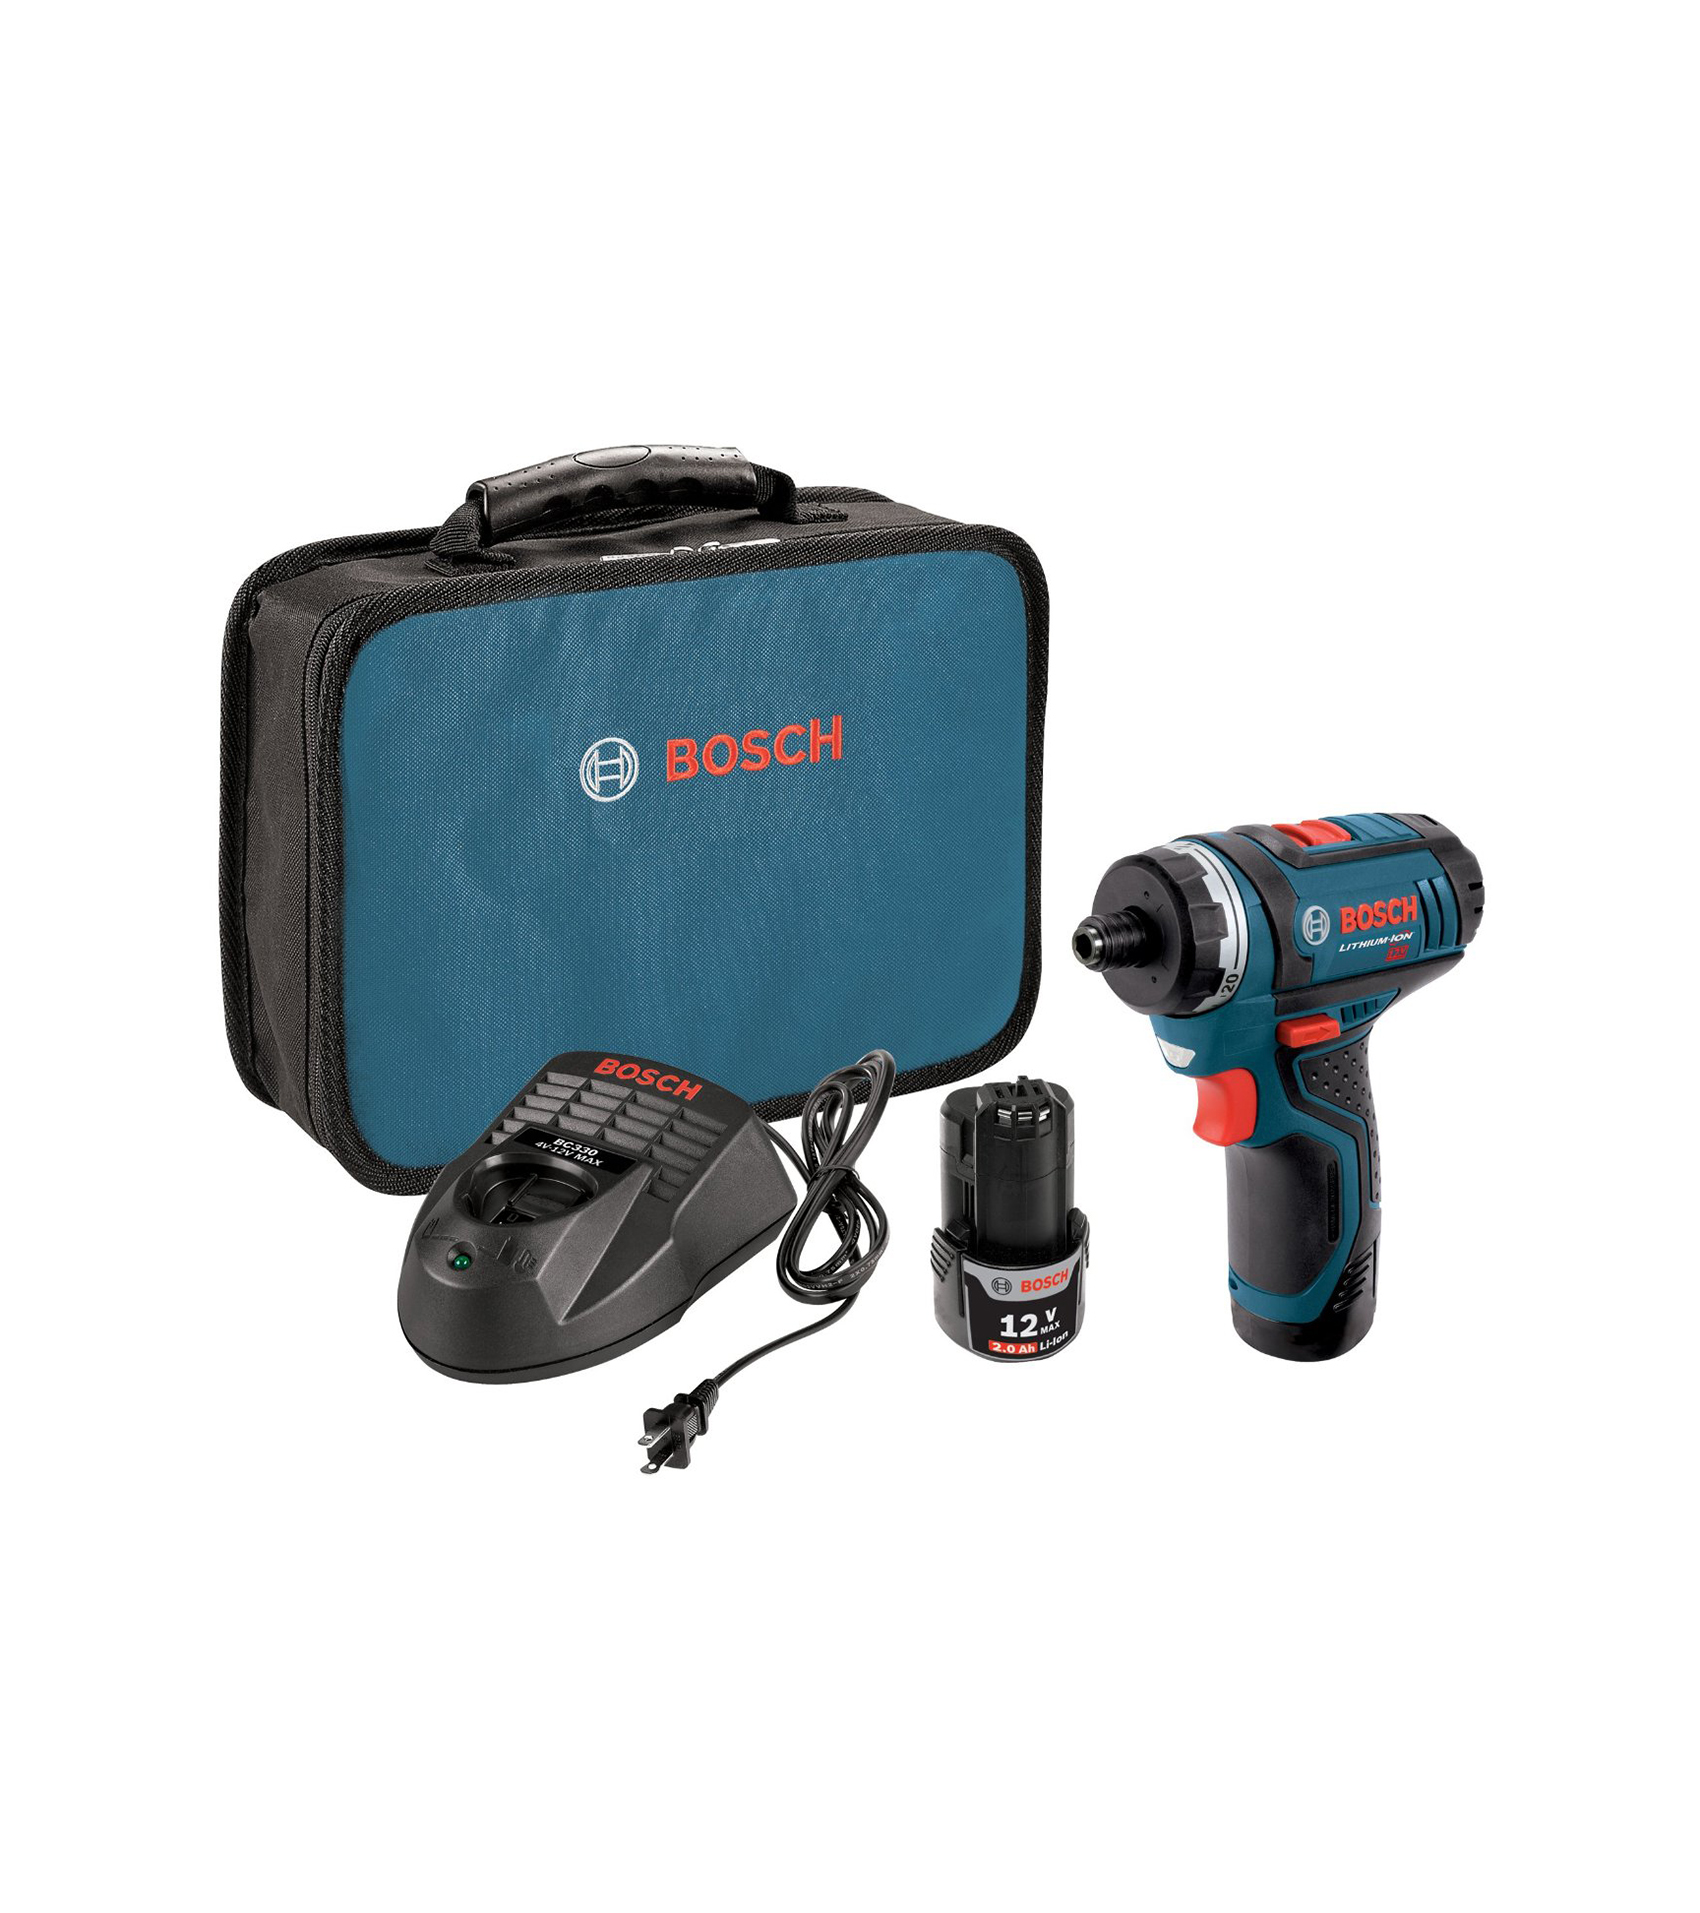 Bosch PS21 Drill with 12-Year Lithium-Ion Battery